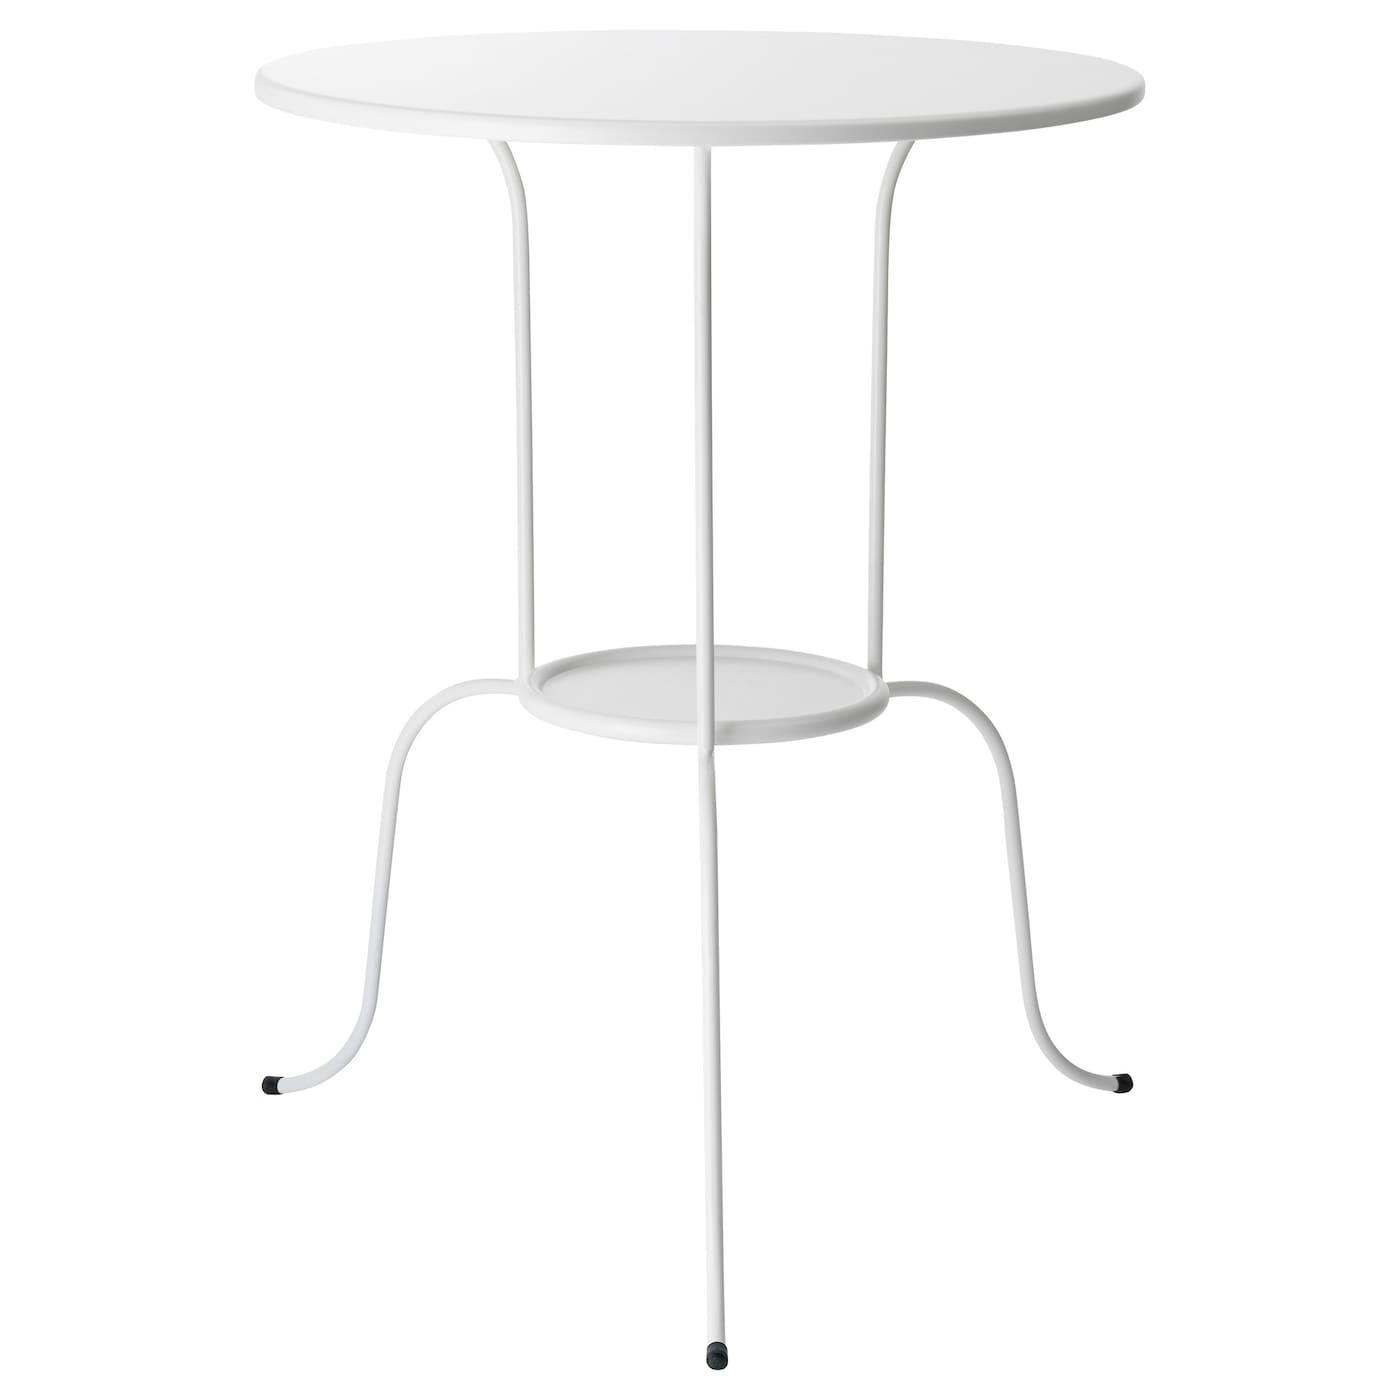 LINDVED Side table White 50x68 cm IKEA